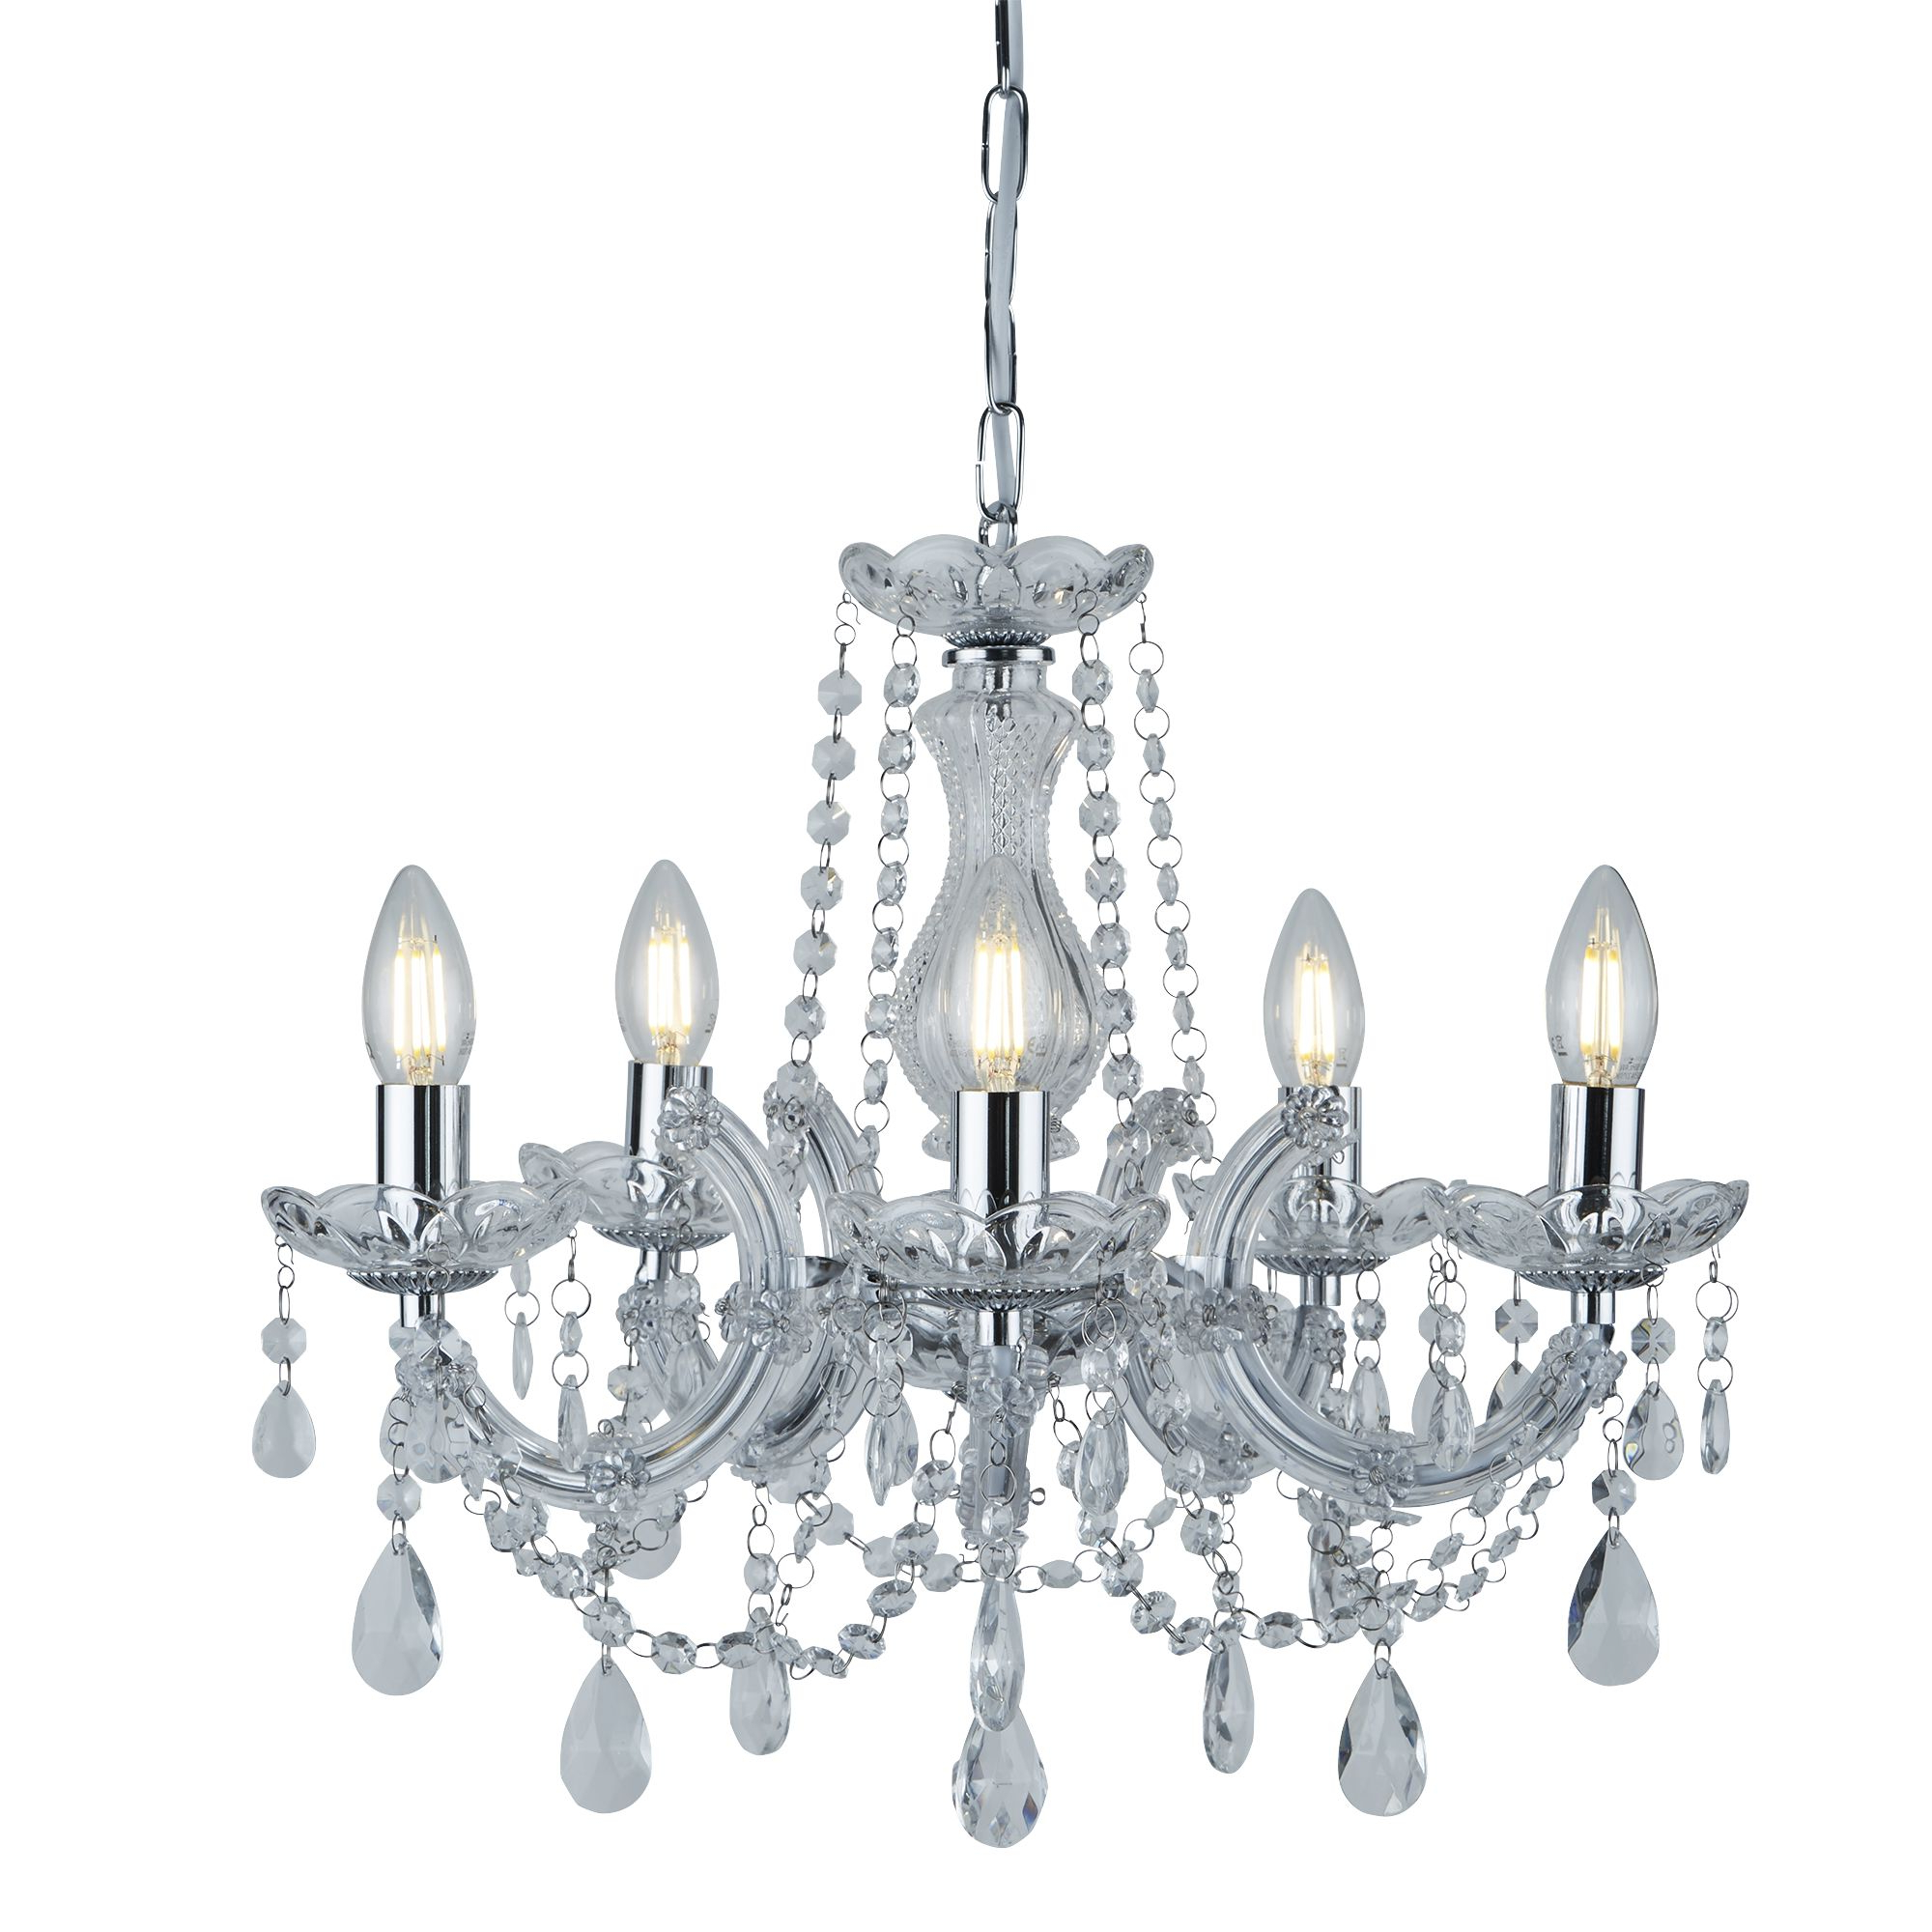 Thresa 5 Light Shaded Chandeliers With Favorite Marie Therese Chrome 5 Light Chandelier With Crystal Drops (View 12 of 20)